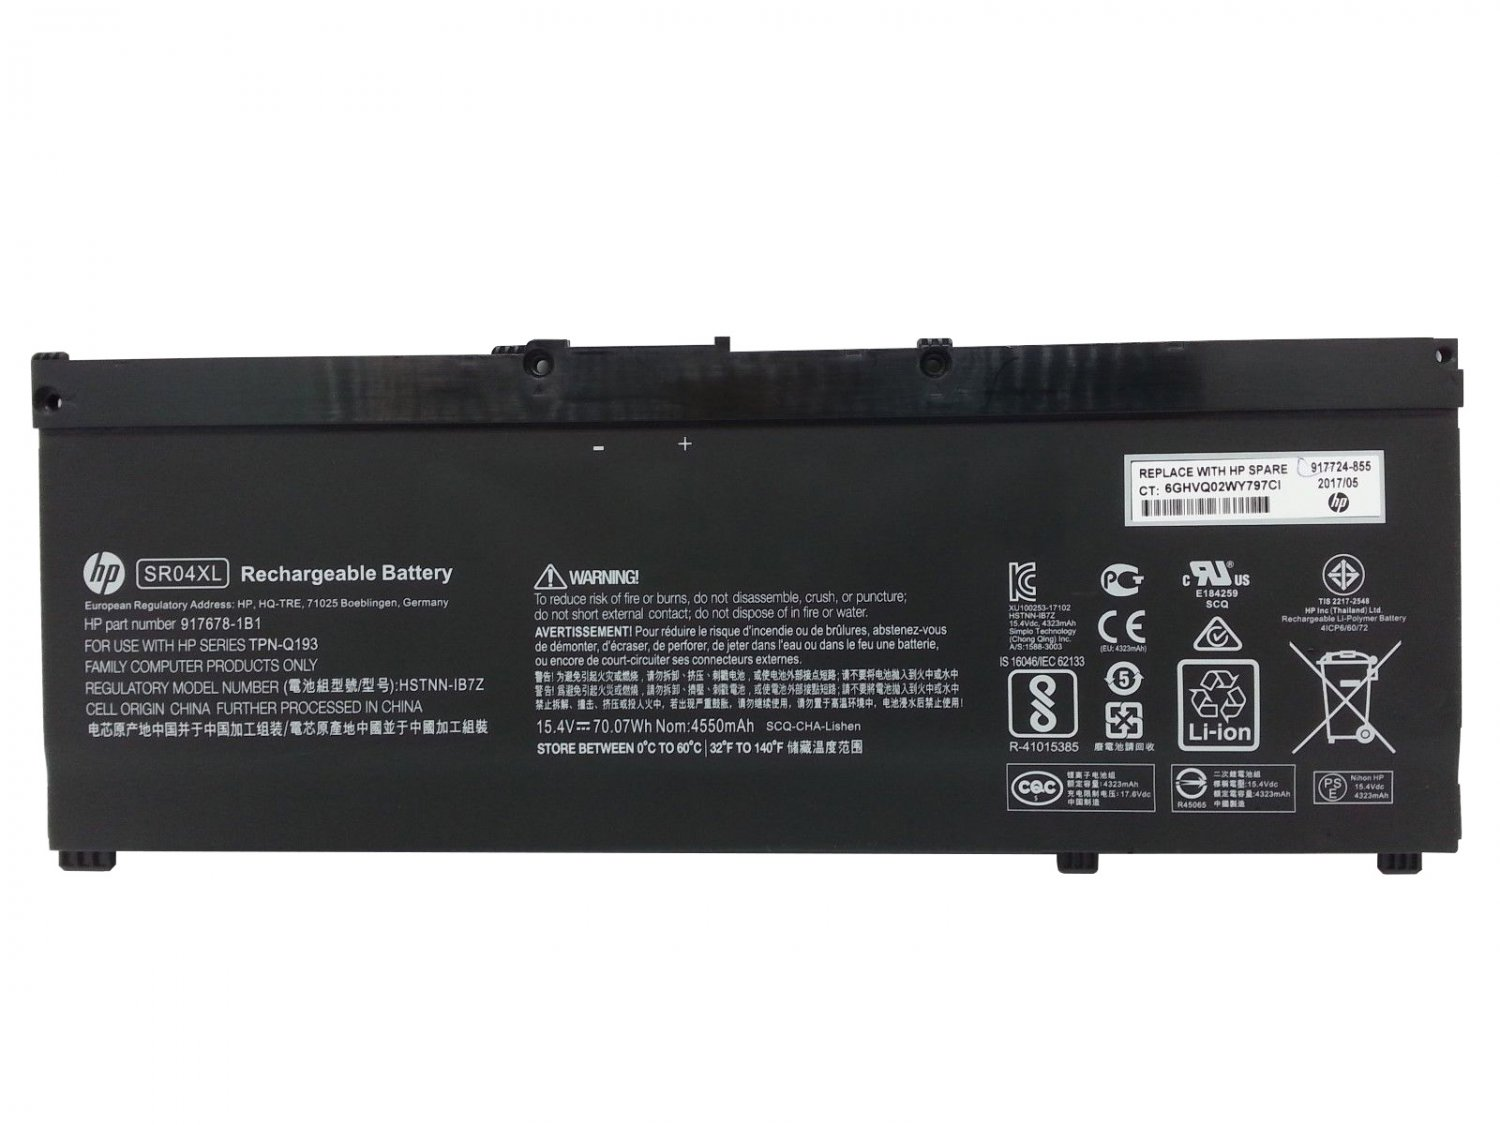 HP Pavilion Power 15-CB022UR 2HN81EA 15-CB022TX 2DP28PA Battery